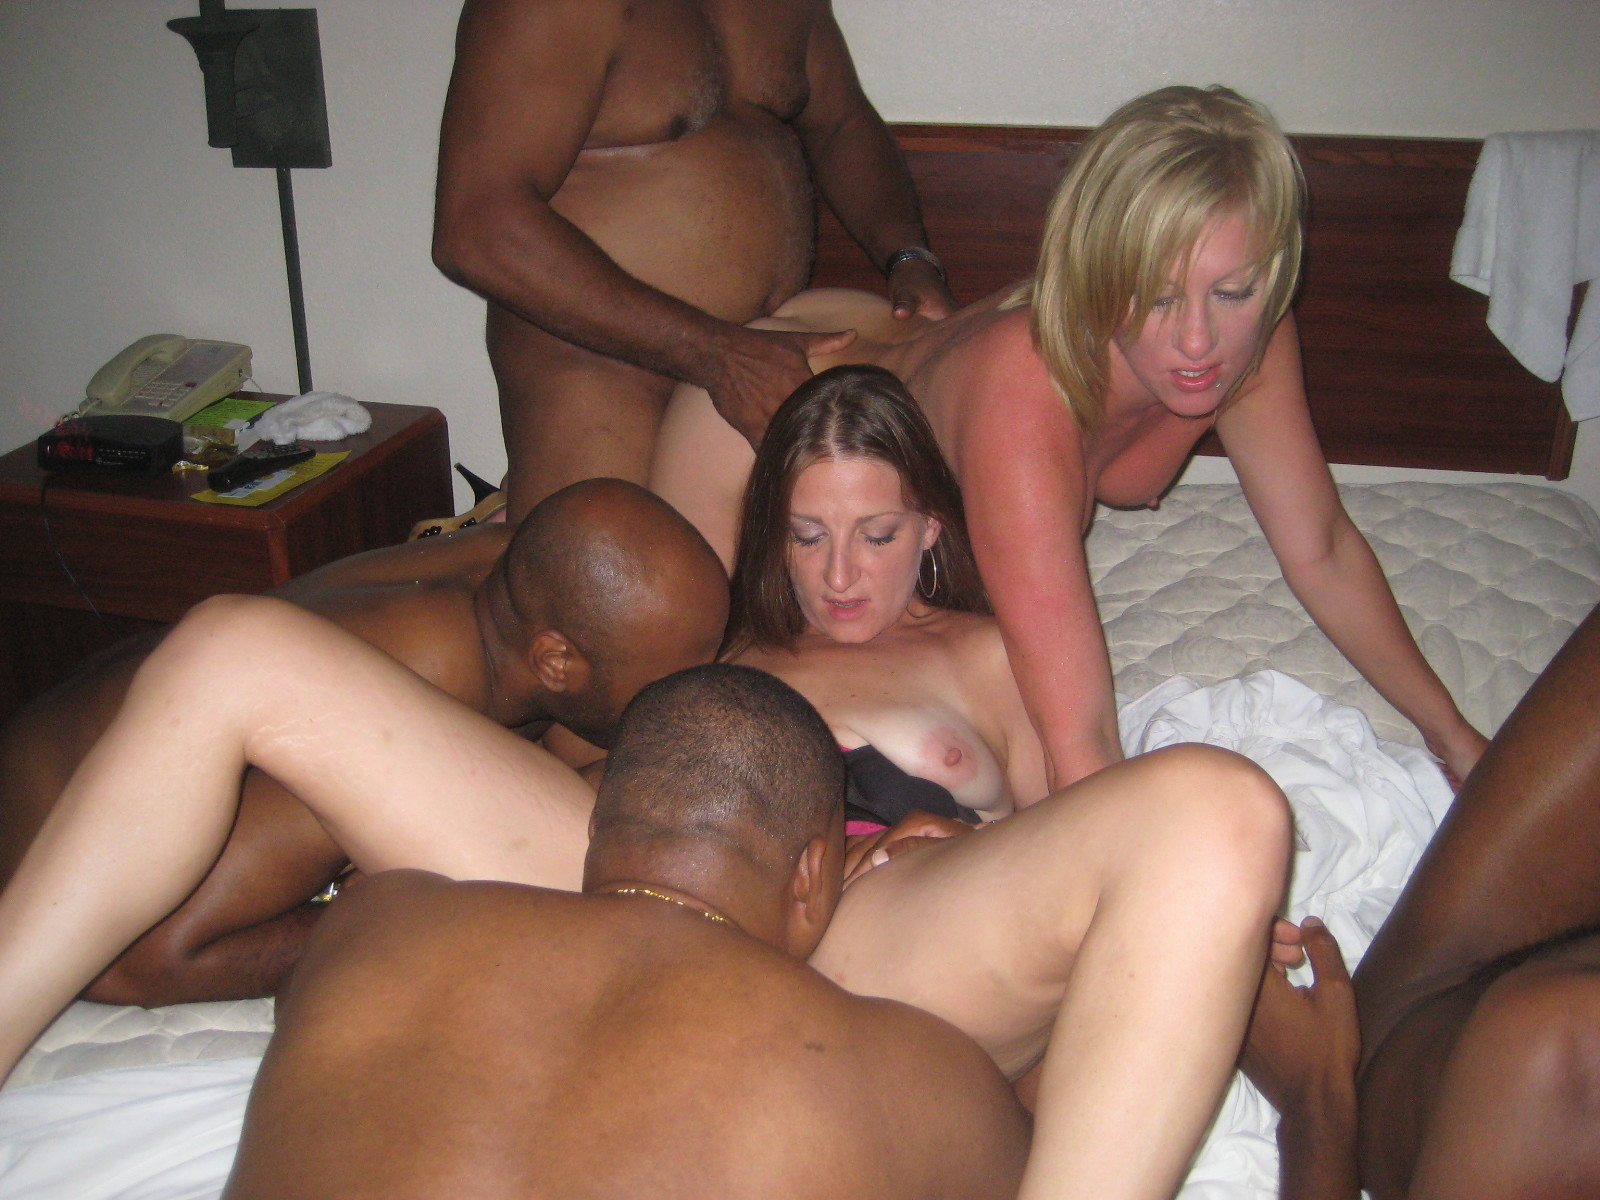 Swapping blond gives head in orgy